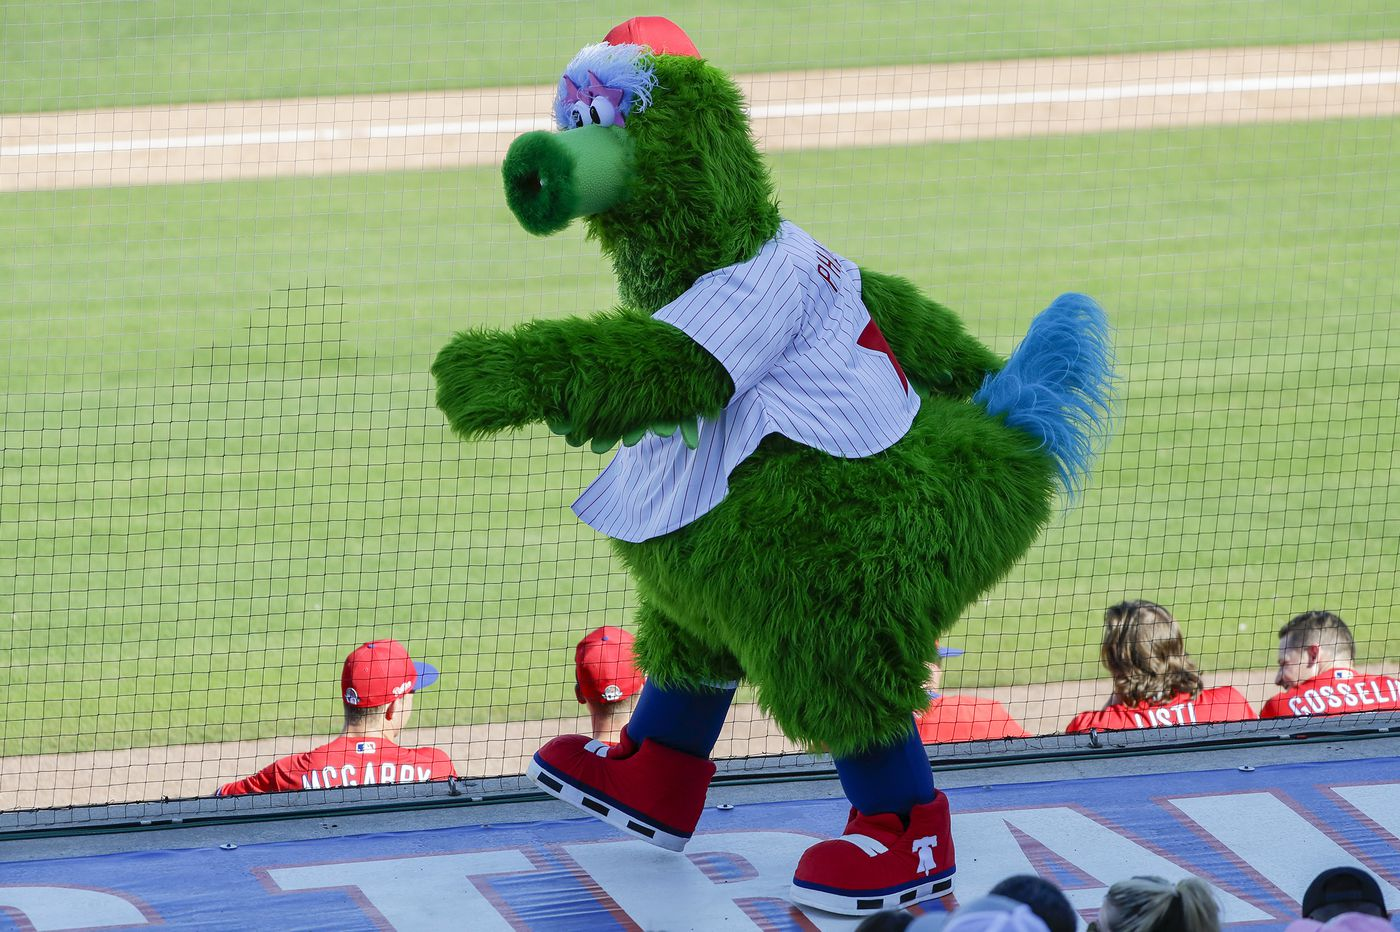 Phillie Phanatic's new look is a petty move to avoid paying artists | Opinion